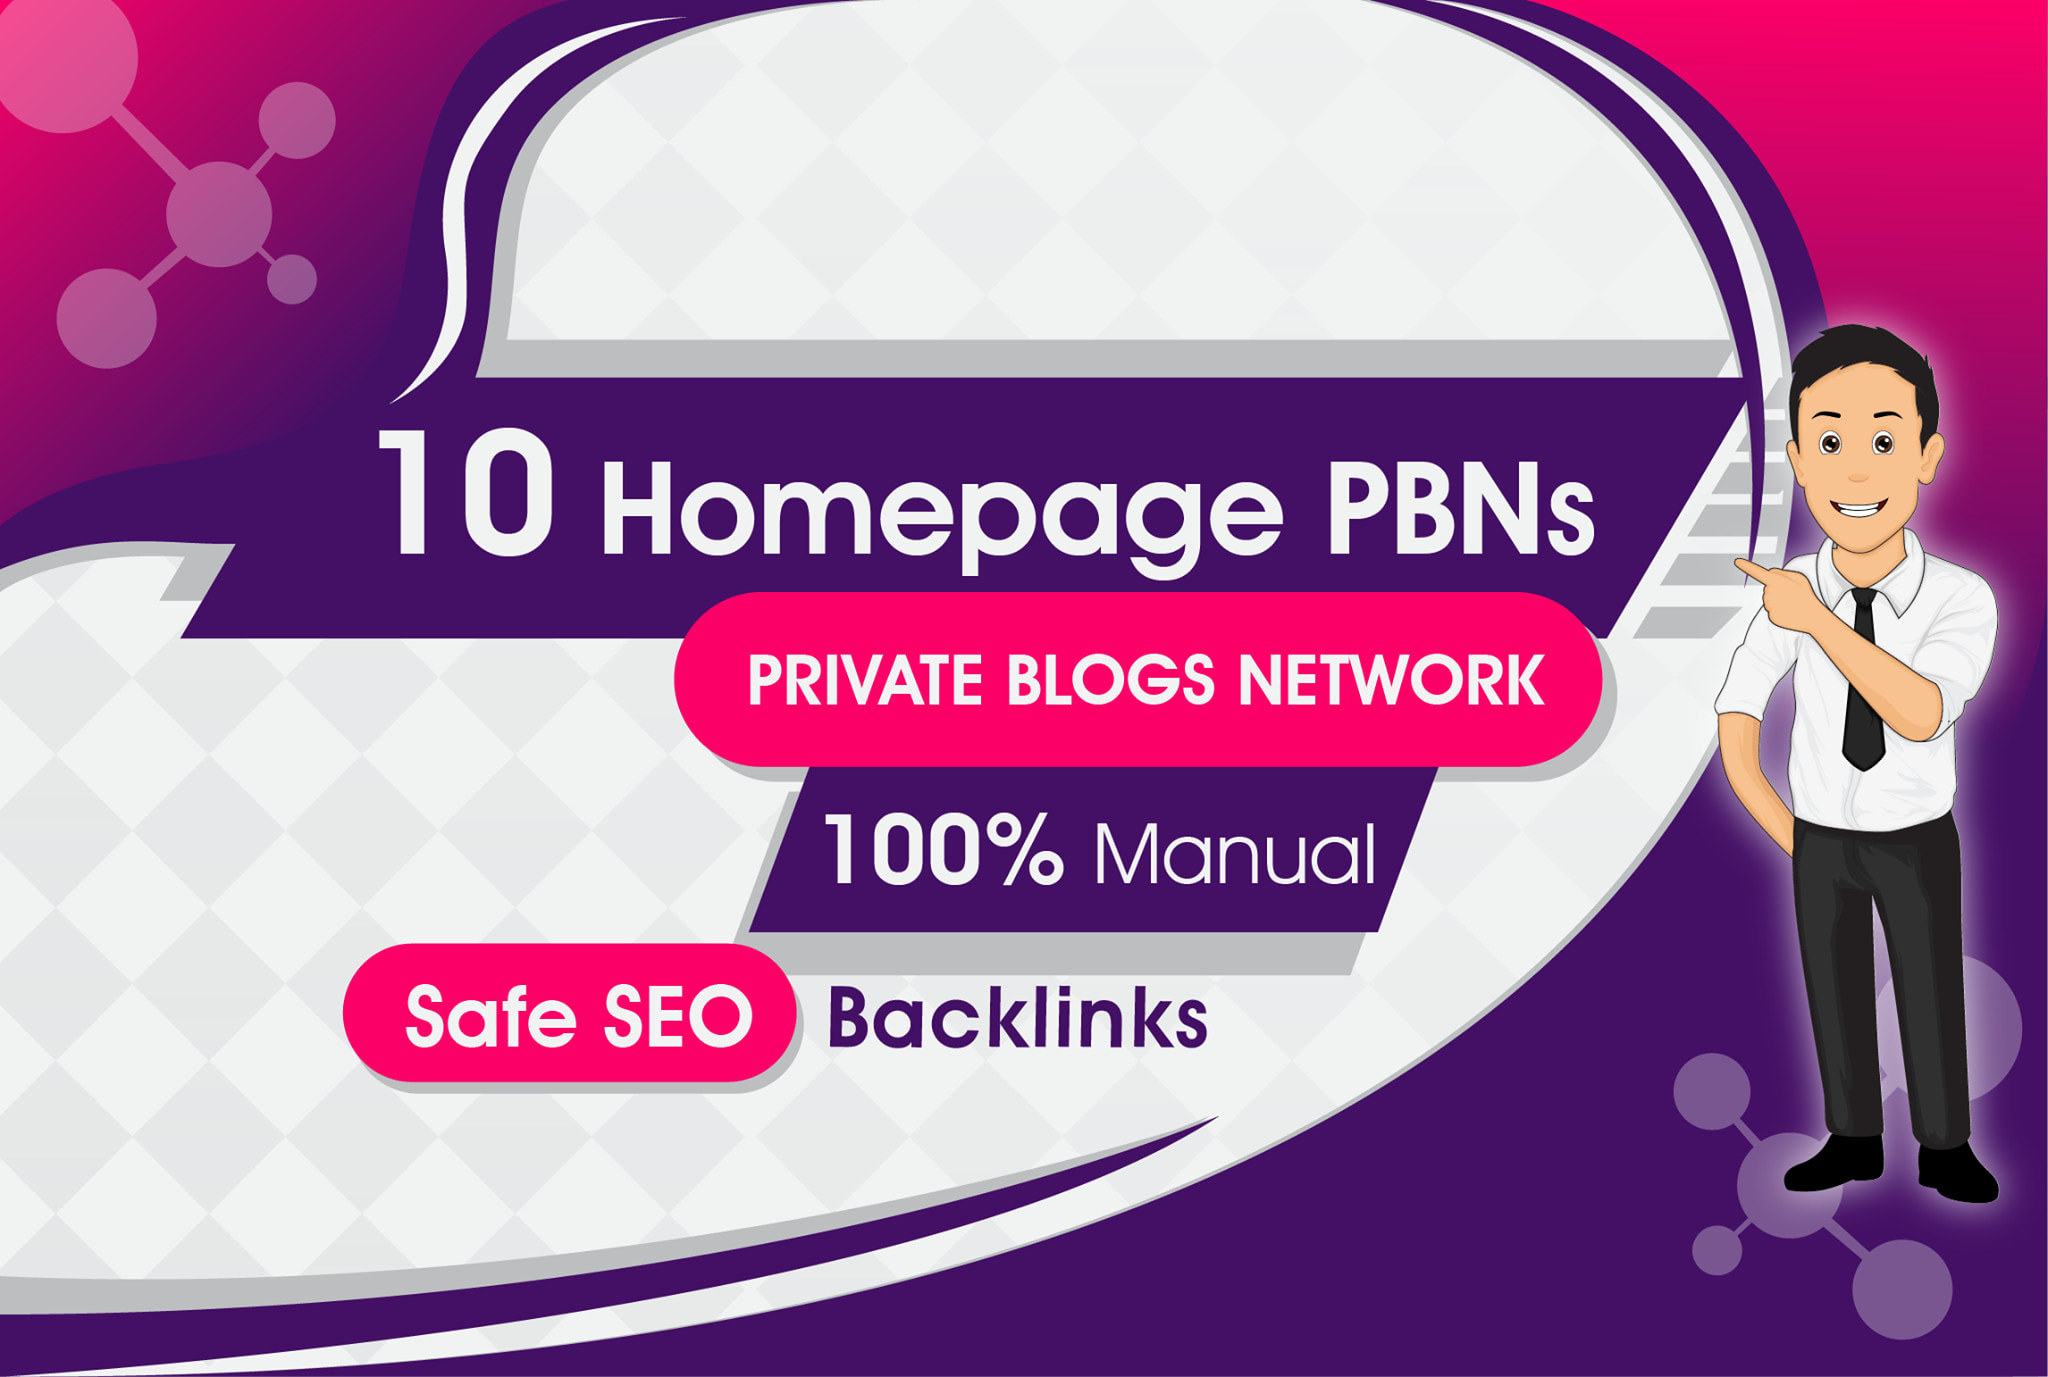 Build Manually 10 Homepage PBN On High DA DR and Aged Sites